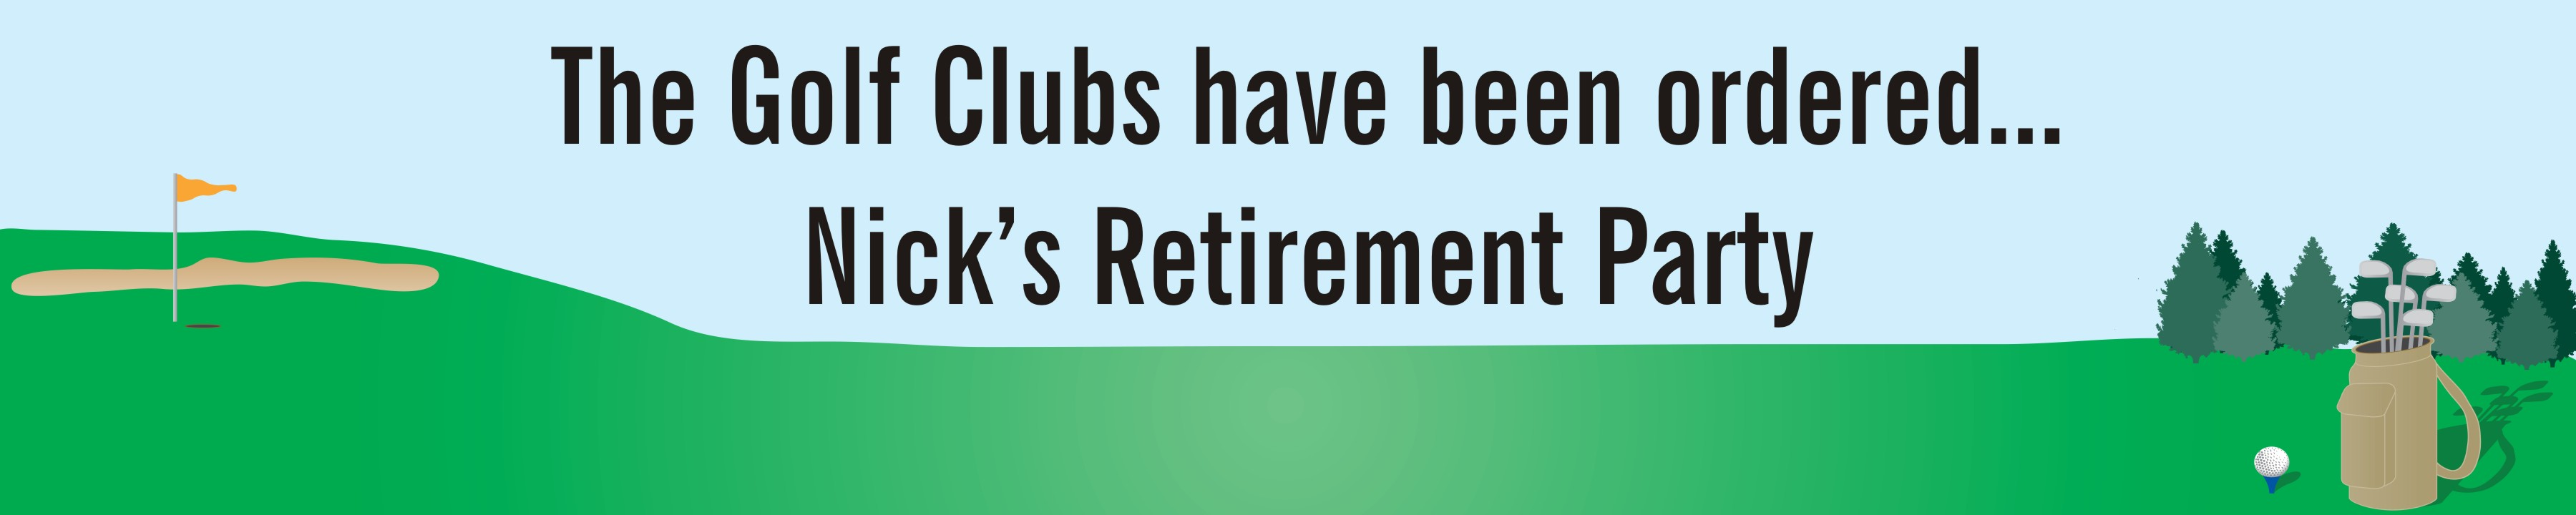 retirement signs banners